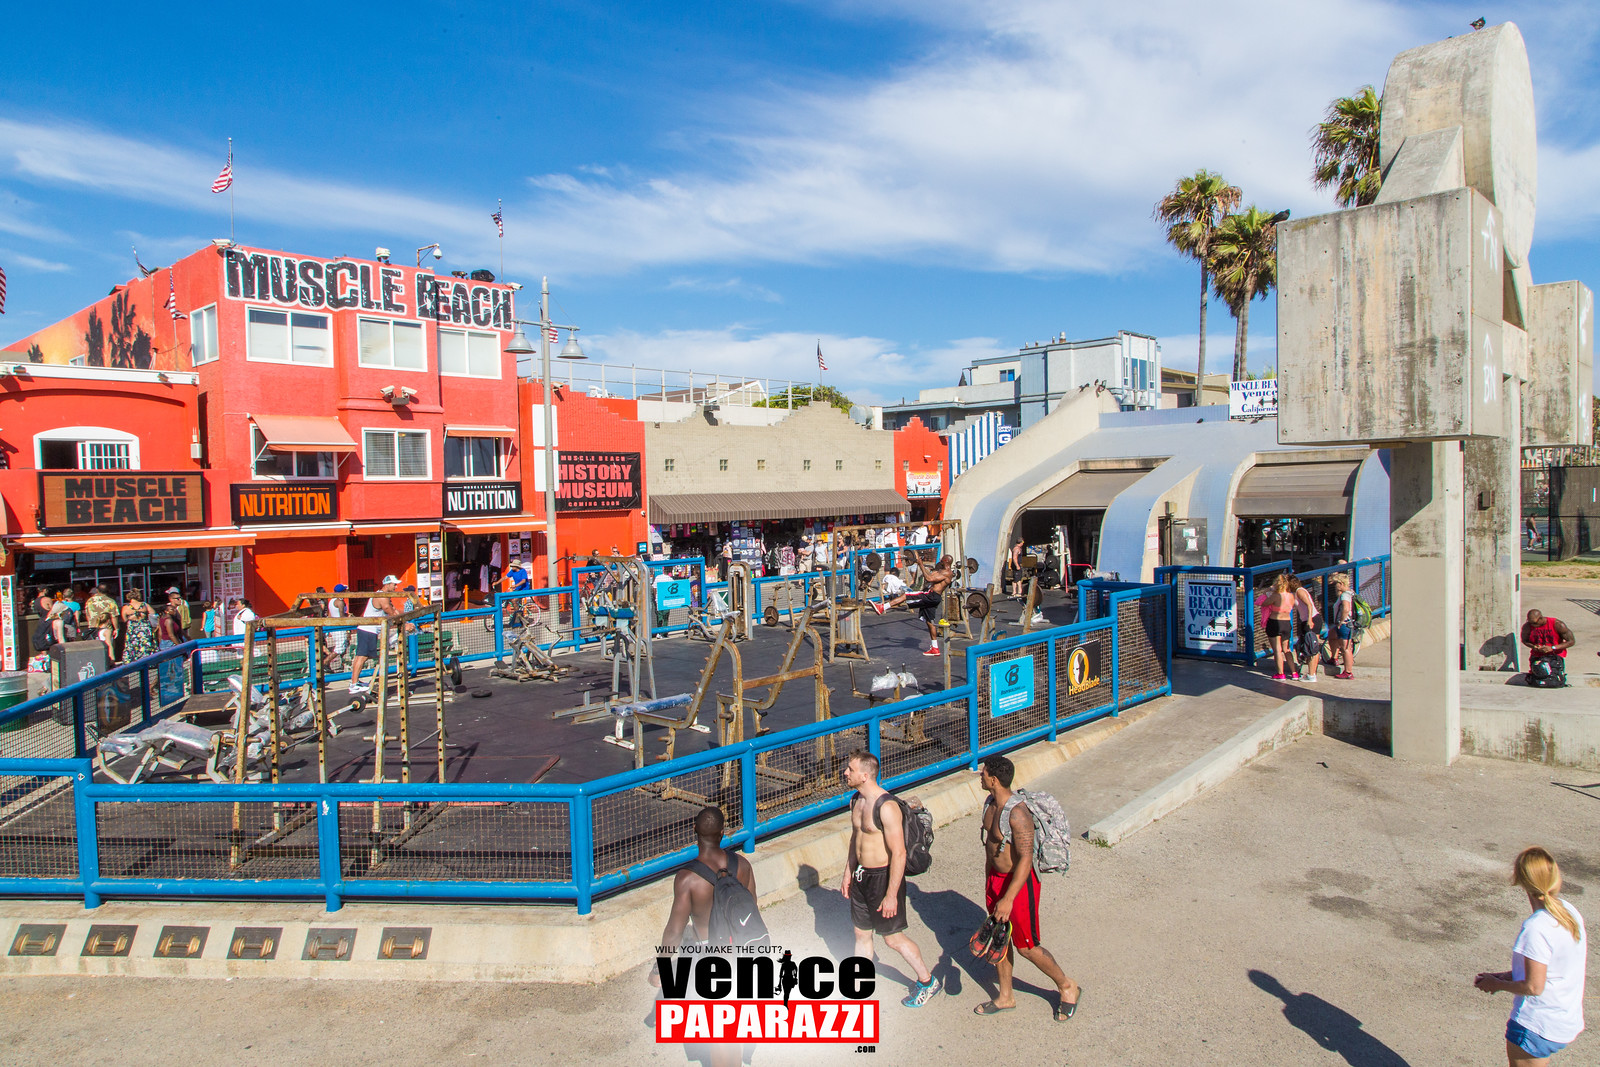 The iconic Muscle Beach Gym is under renovation Venice Paparazzi 1600x1067